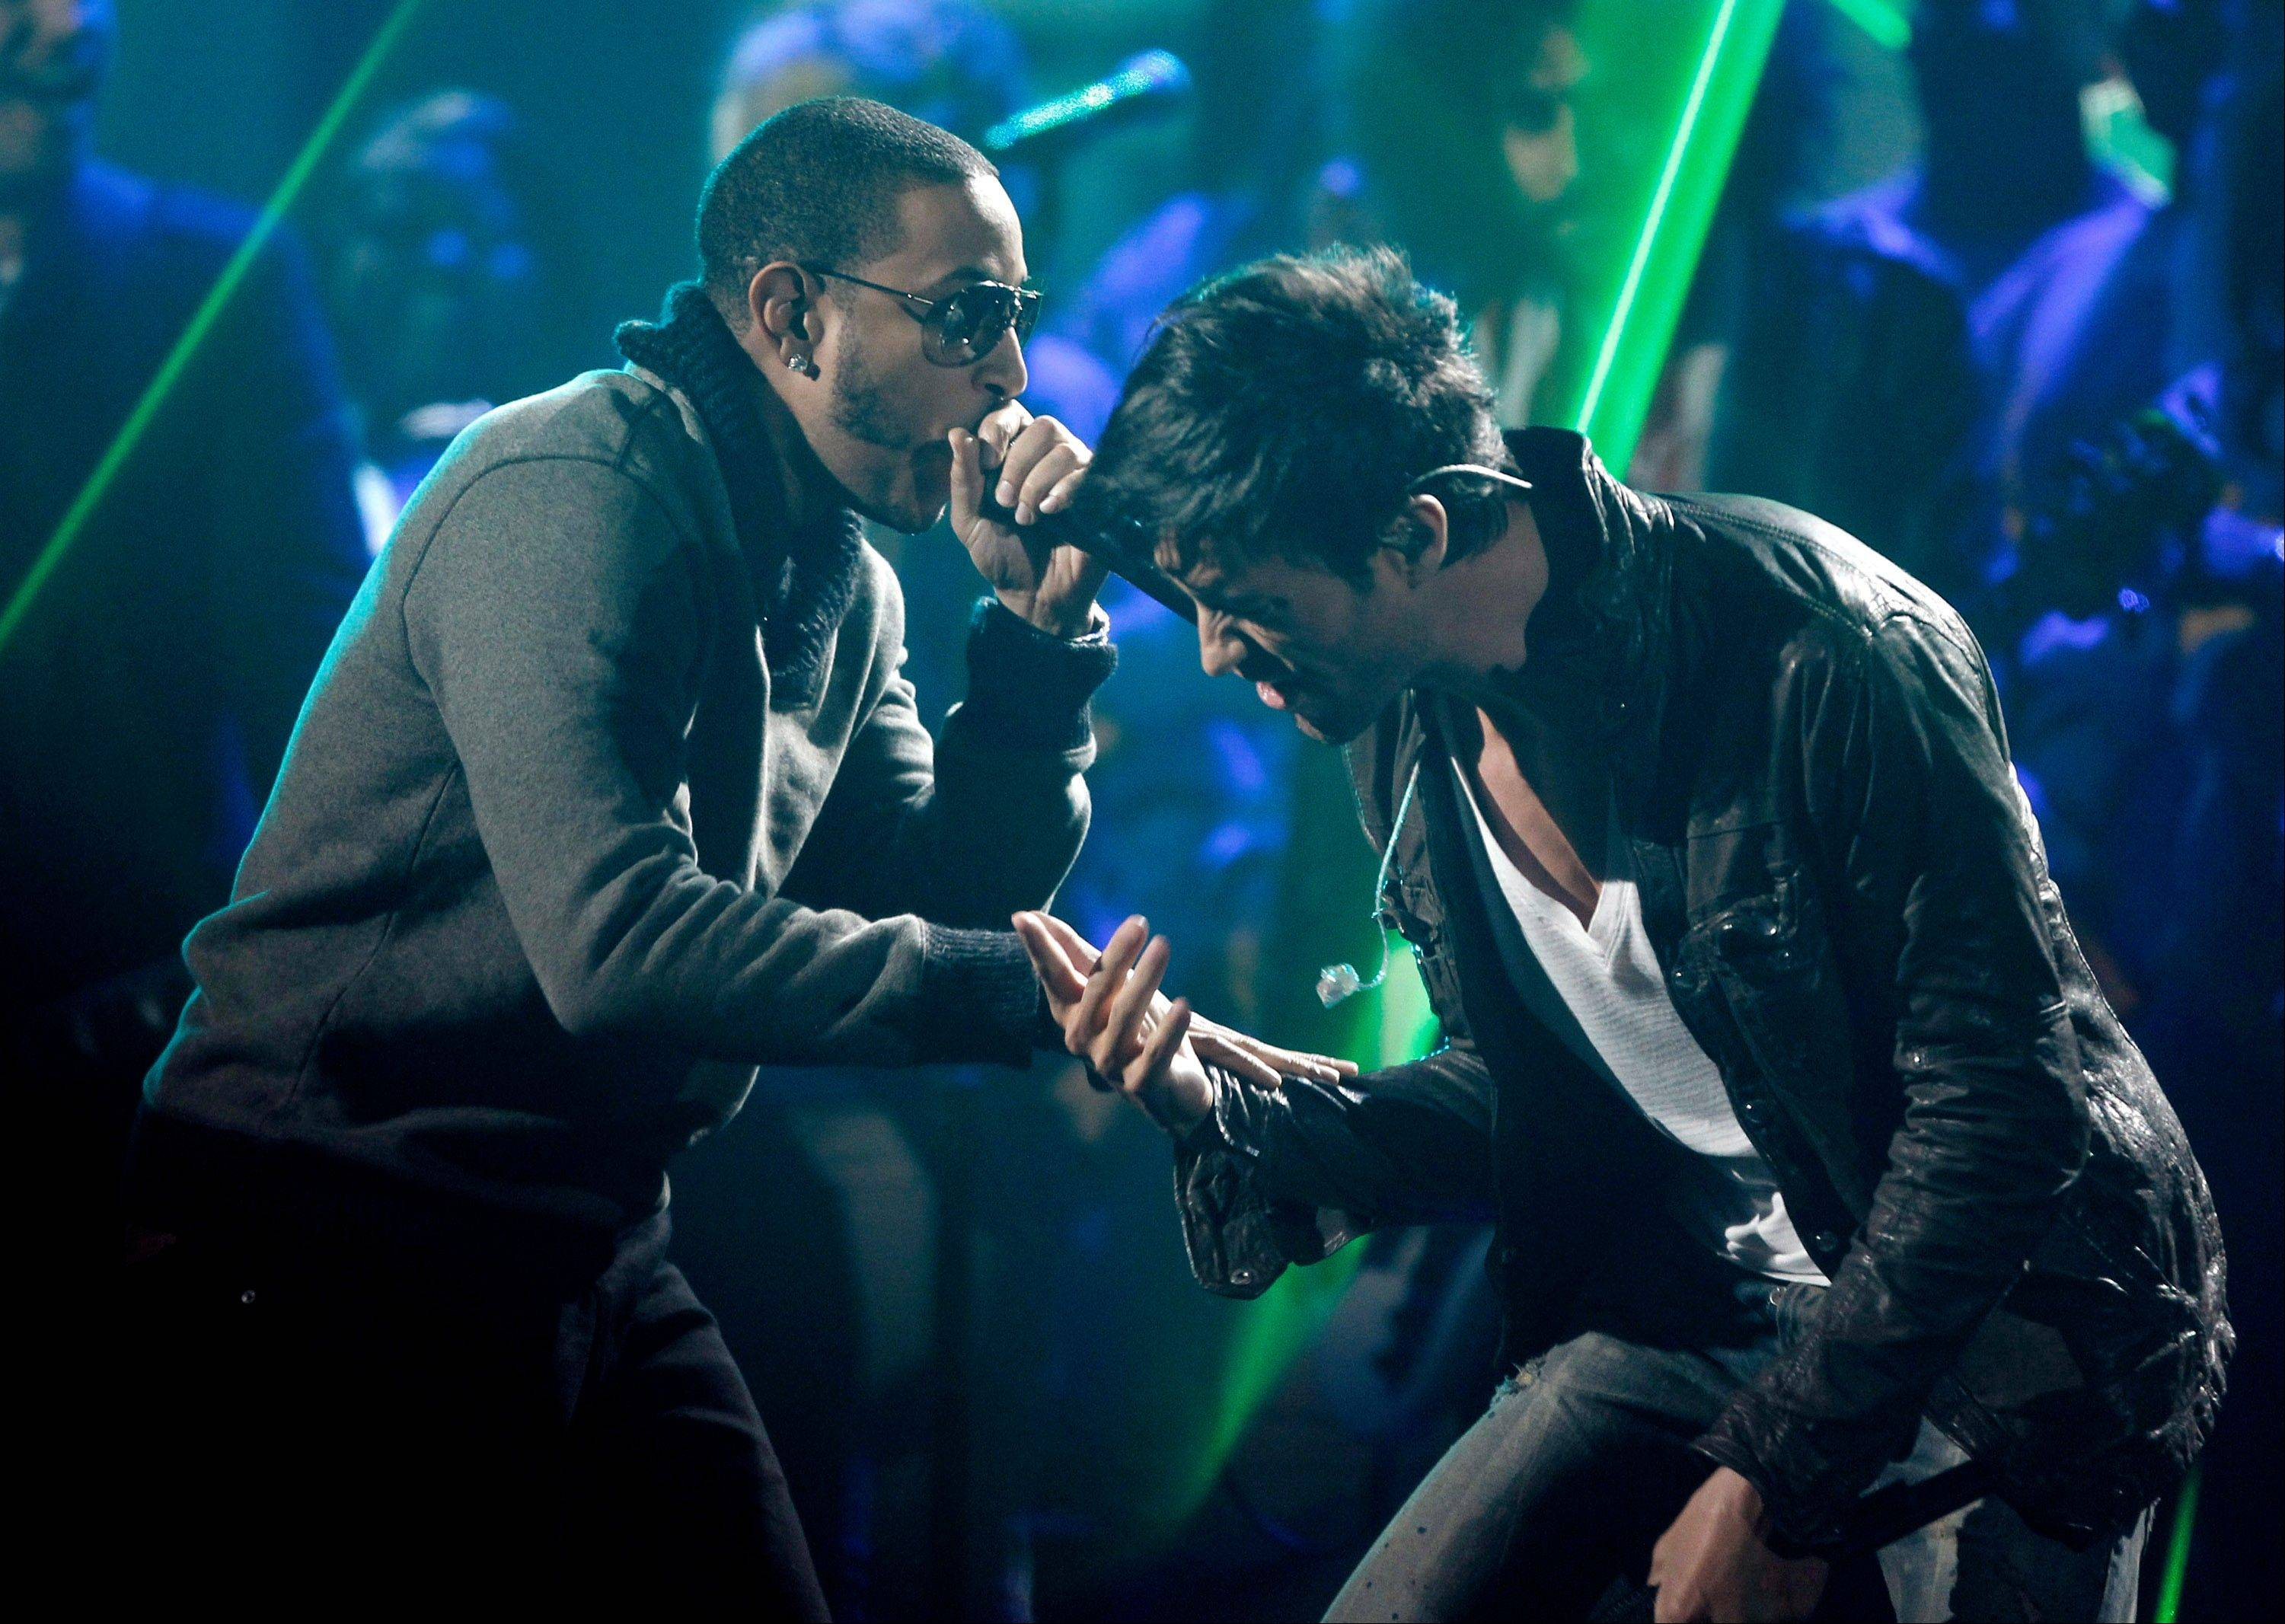 Ludacris, left, and Enrique Iglesias perform onstage at the 39th Annual American Music Awards on Sunday, Nov. 20, 2011 in Los Angeles.